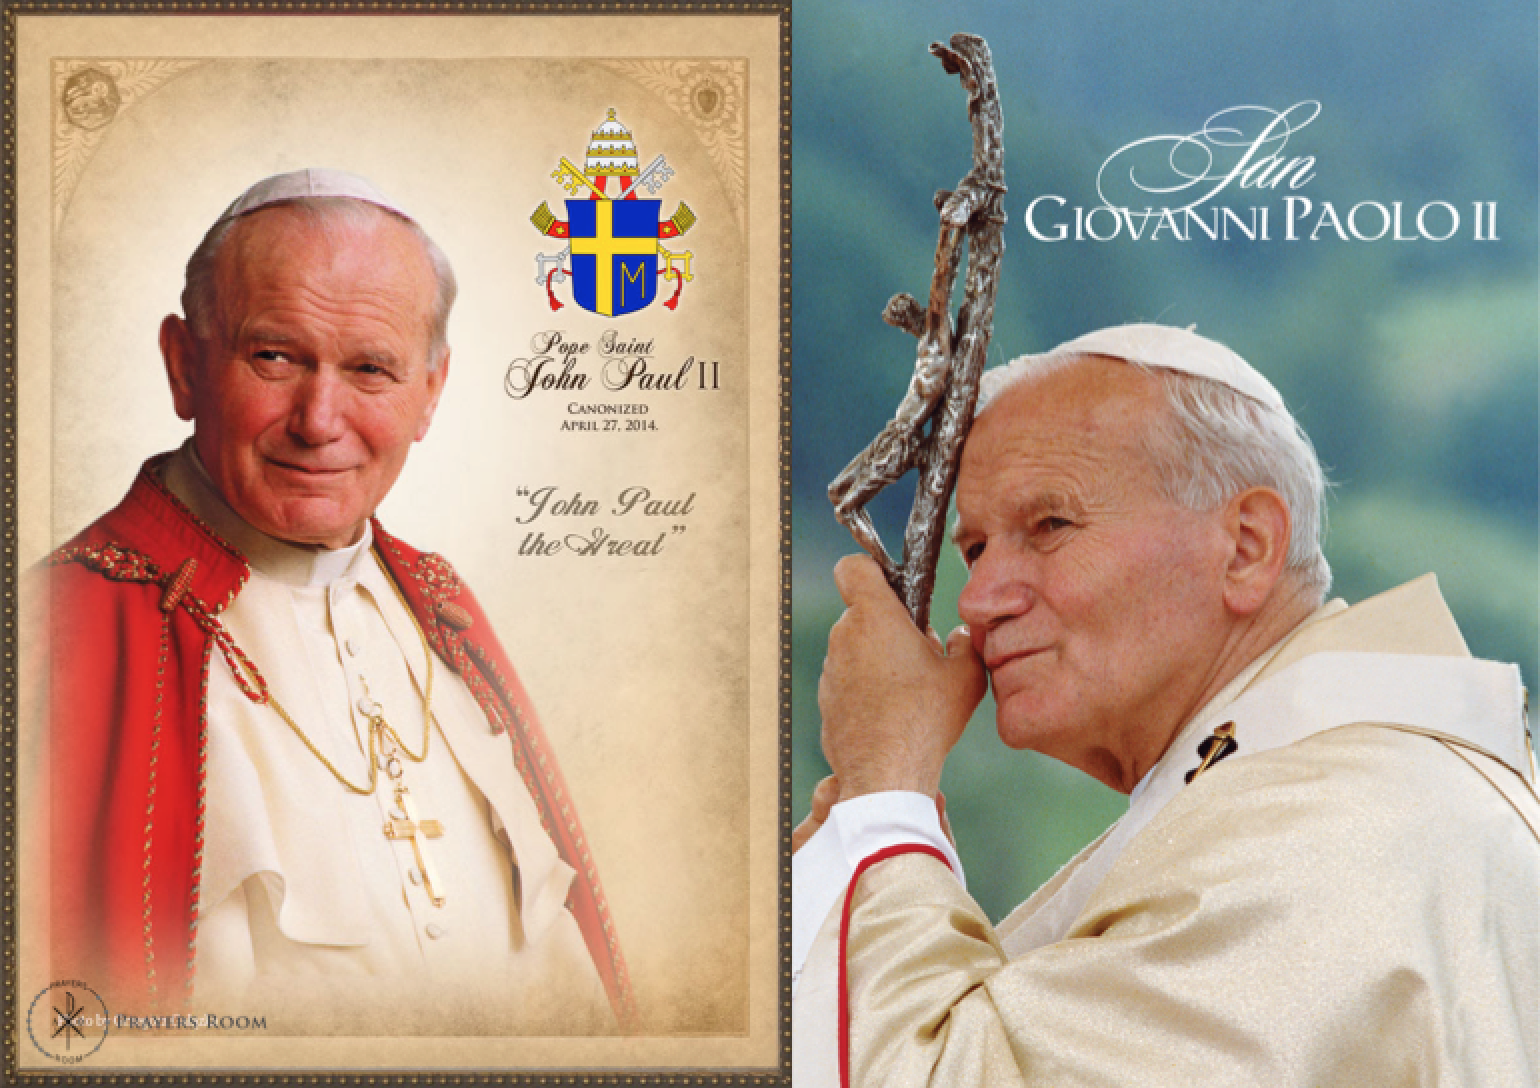 john paul ii essay His holiness pope john paul ii (karol wojtyła, reigned 1978 to 2005) was not a   karol wojtyła's 1959 essay was, it turned out, his only significant foray into.